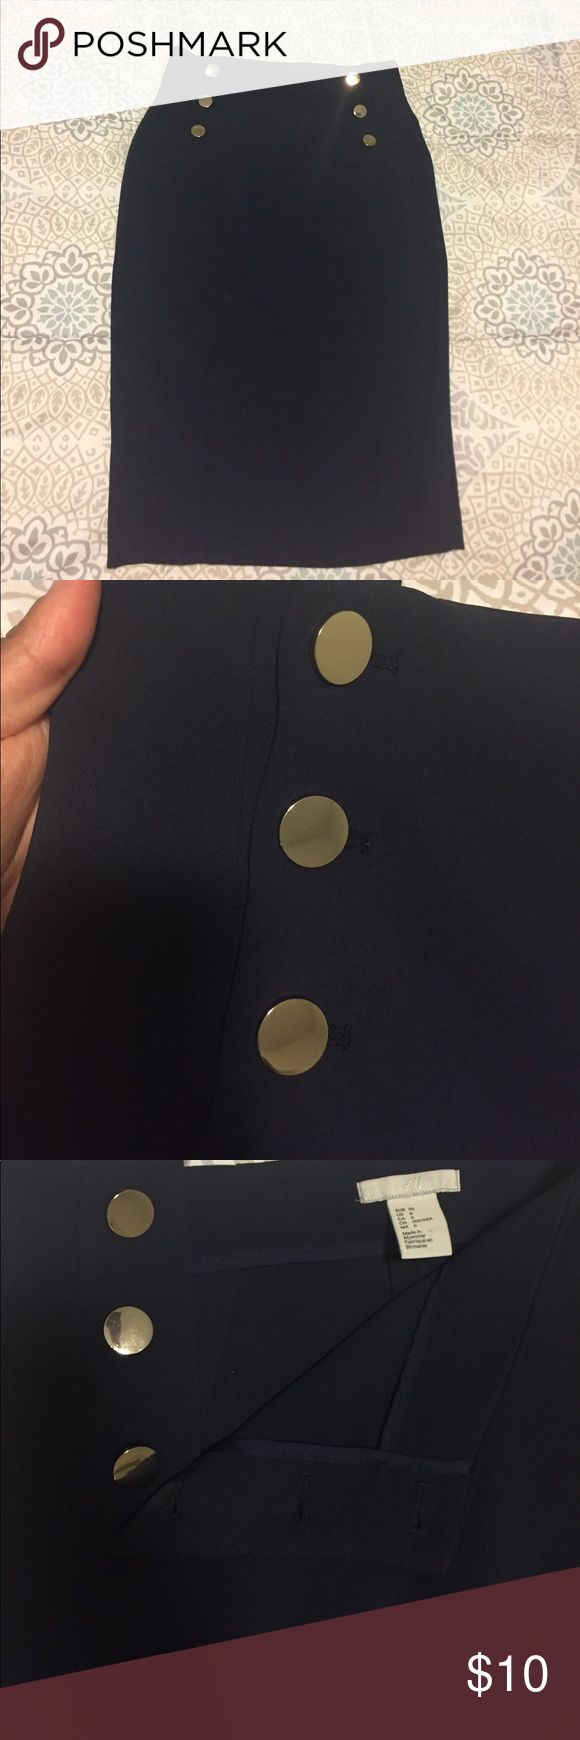 H&M Navy Pencil Skirt with gold buttons - Size 6 Classy and Sassy Navy pencil skirt for sale! No zipper - gold buttons on each side allow you to put this skirt on and off. A little slit in the back to make this the perfect skirt for work or play. *Pet and Smoke Free Home* H&M Skirts Pencil